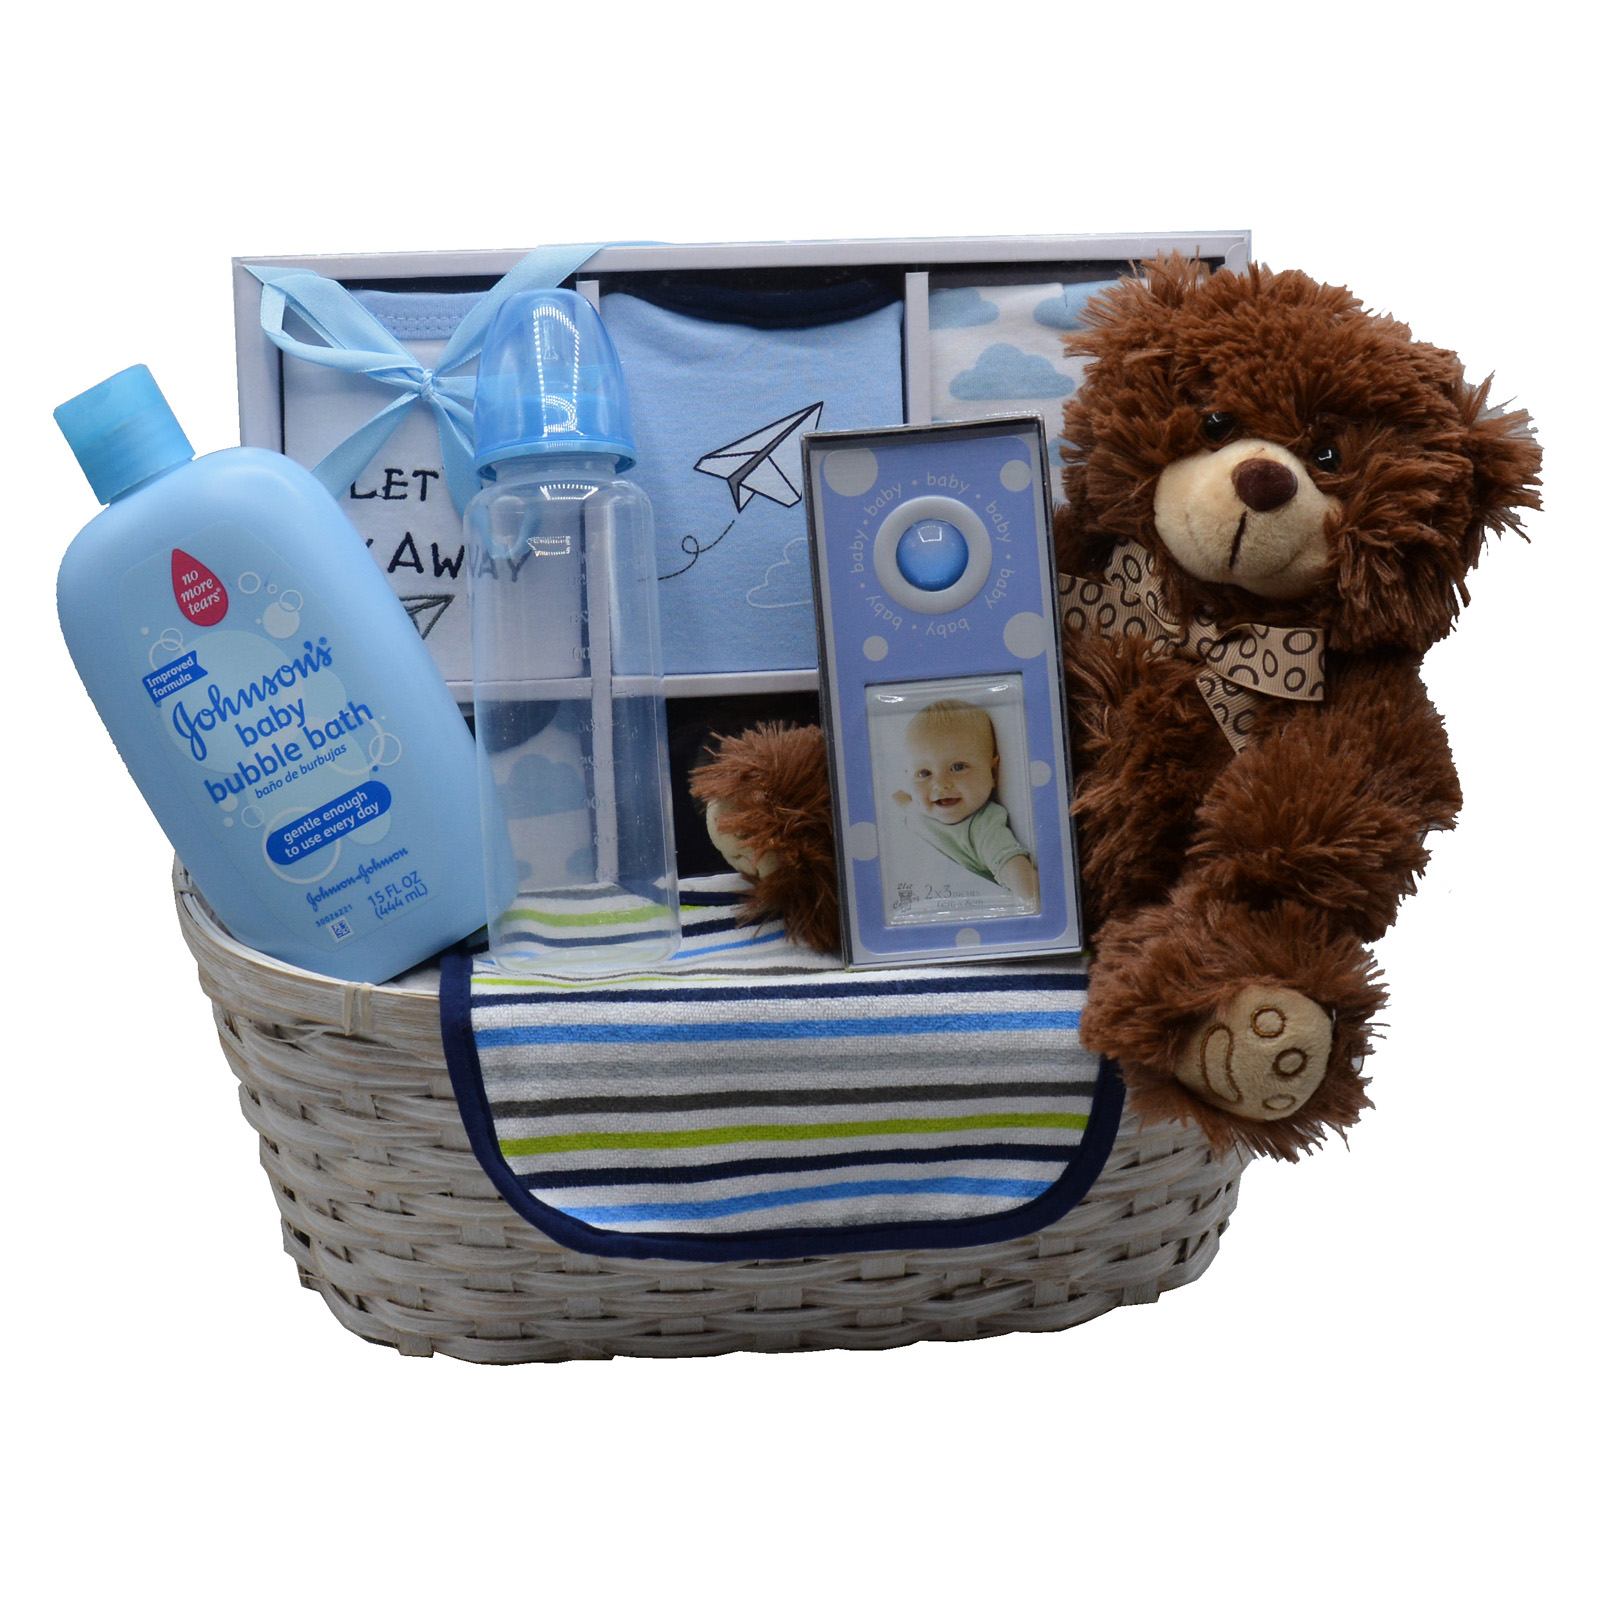 New Baby Gift Basket Usa : Newborn baby gift items india life style by modernstork